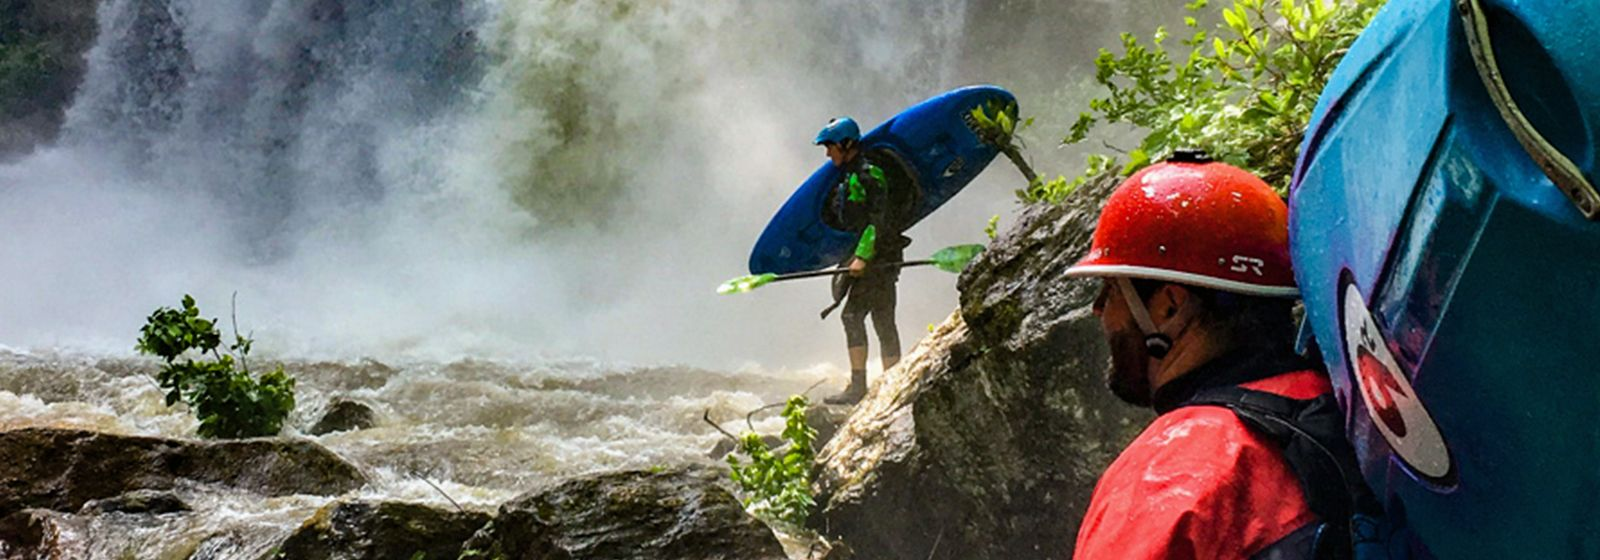 Video: A whitewater adventure on Tuckasegee River